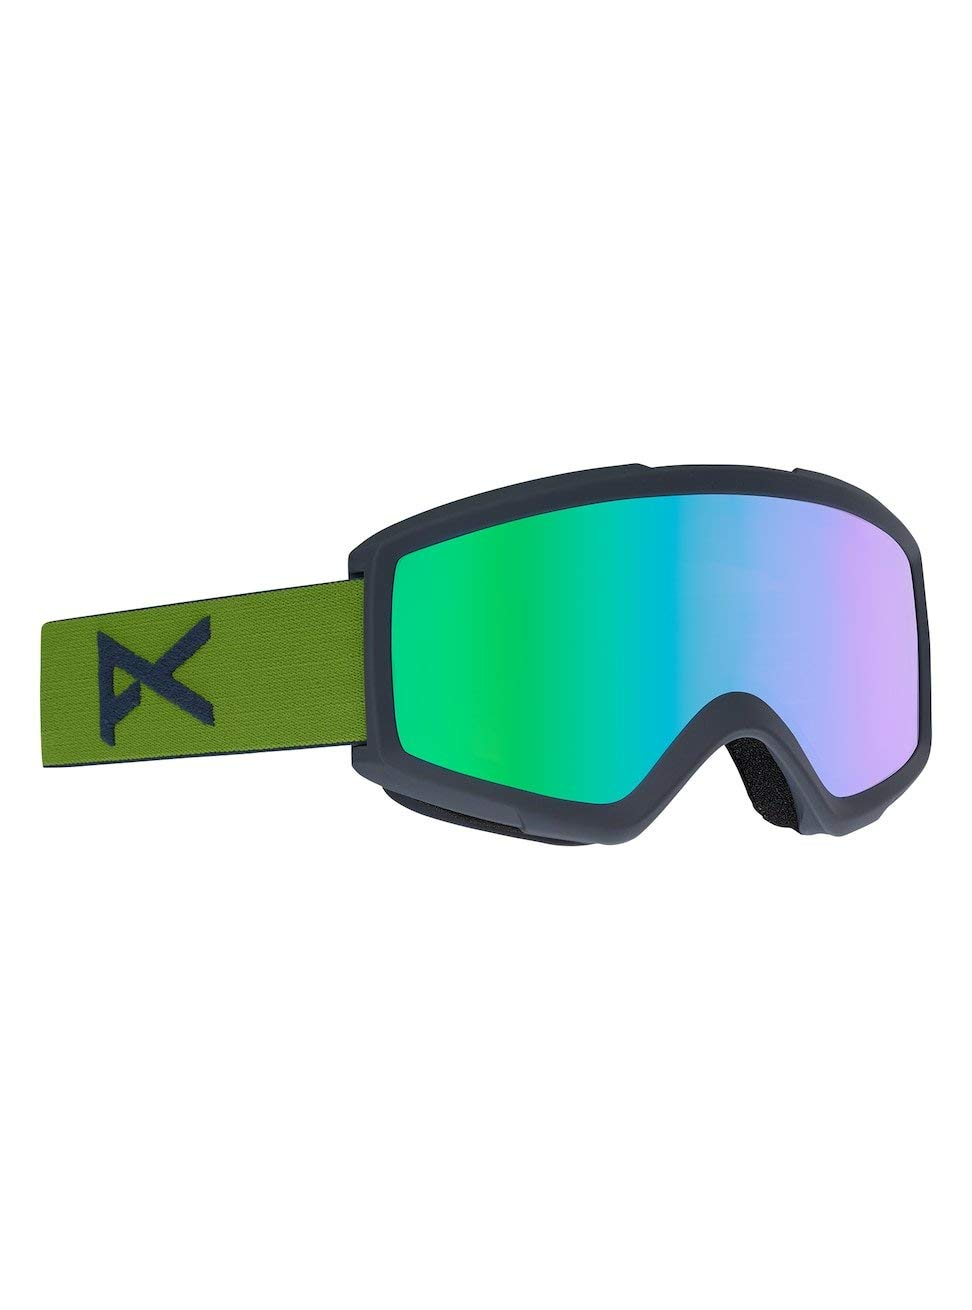 1dc26e27b60 Get Quotations · Anon Helix 2.0 w Spare Lens Snow Goggles One Size Forest  Green ~ Green Solex